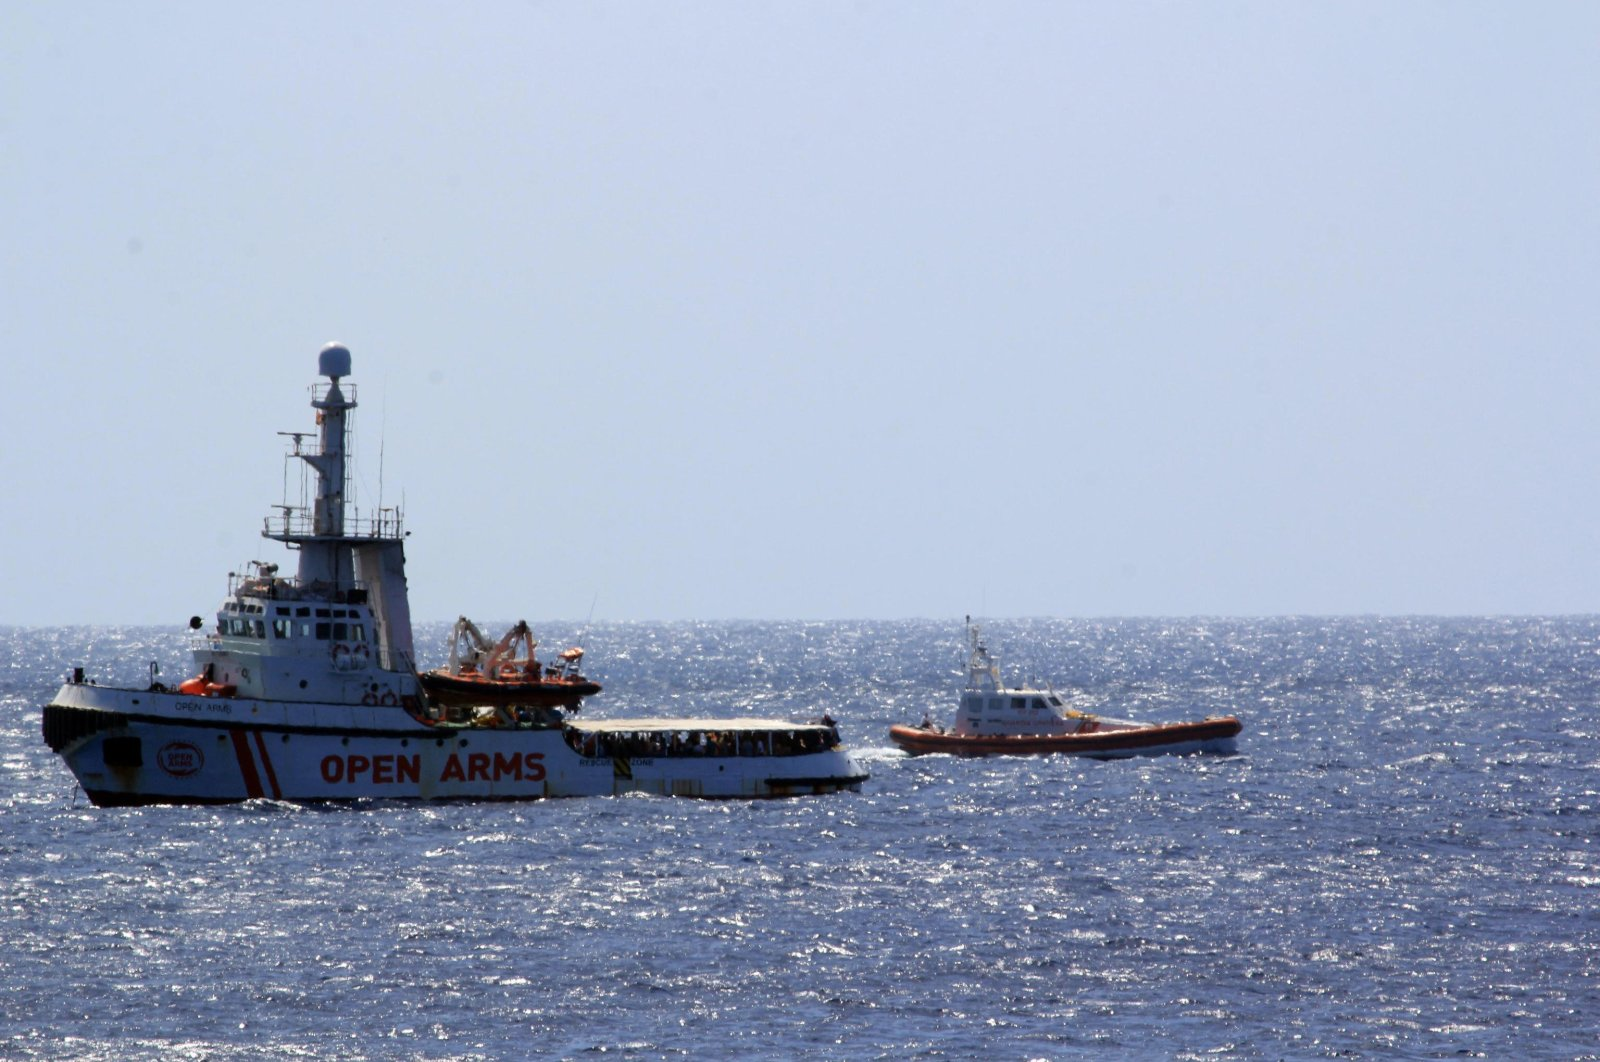 The Open Arms Spanish humanitarian boat with 147 migrants, left, is monitored by an Italian Coast guard vessel as it sails off the coasts of the Sicilian island of Lampedusa, southern Italy, Sunday, Aug. 15, 2019. (AP Photo)